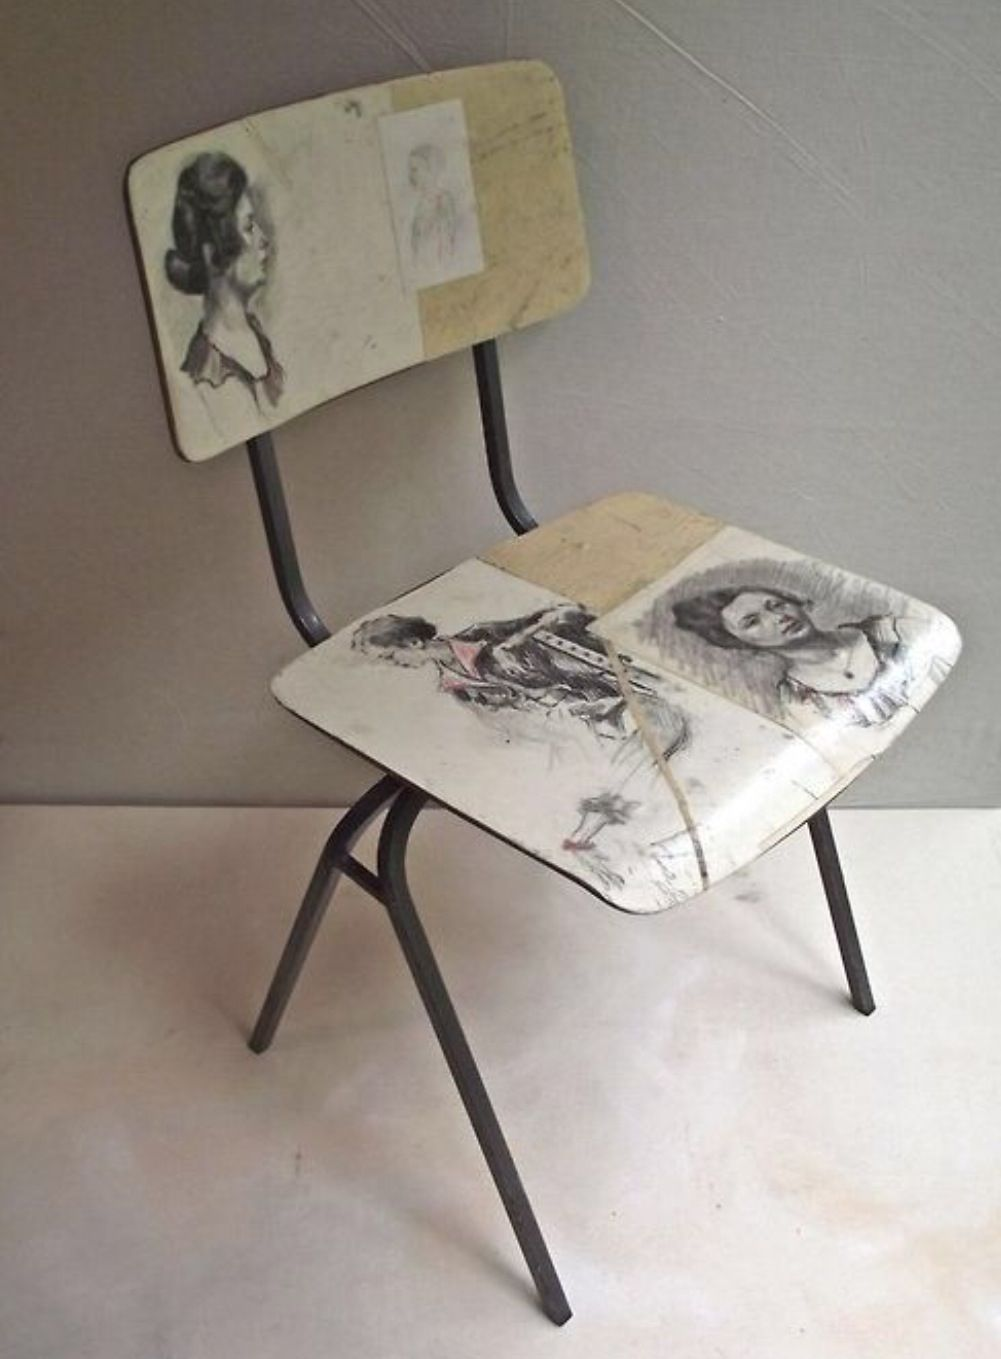 Vintage prints photocopied and decoupaged onto a modern chair--great way to channel the past into the present!